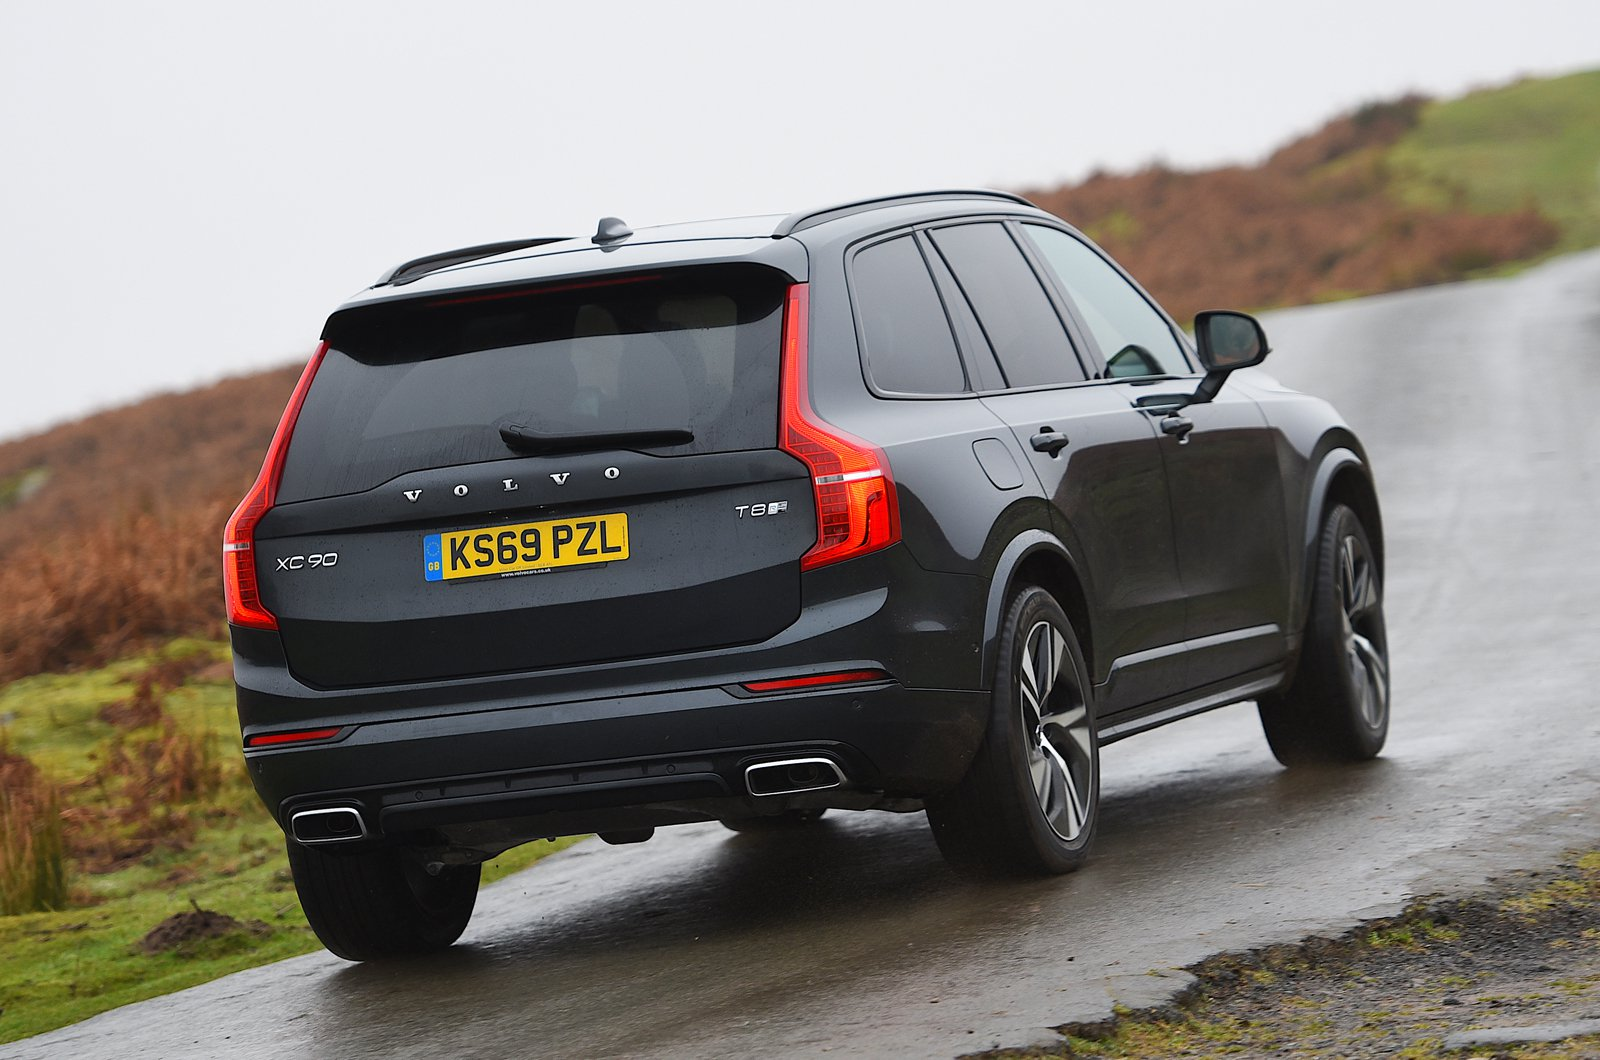 Volvo XC90 T8 rear cornering - 69-plate car